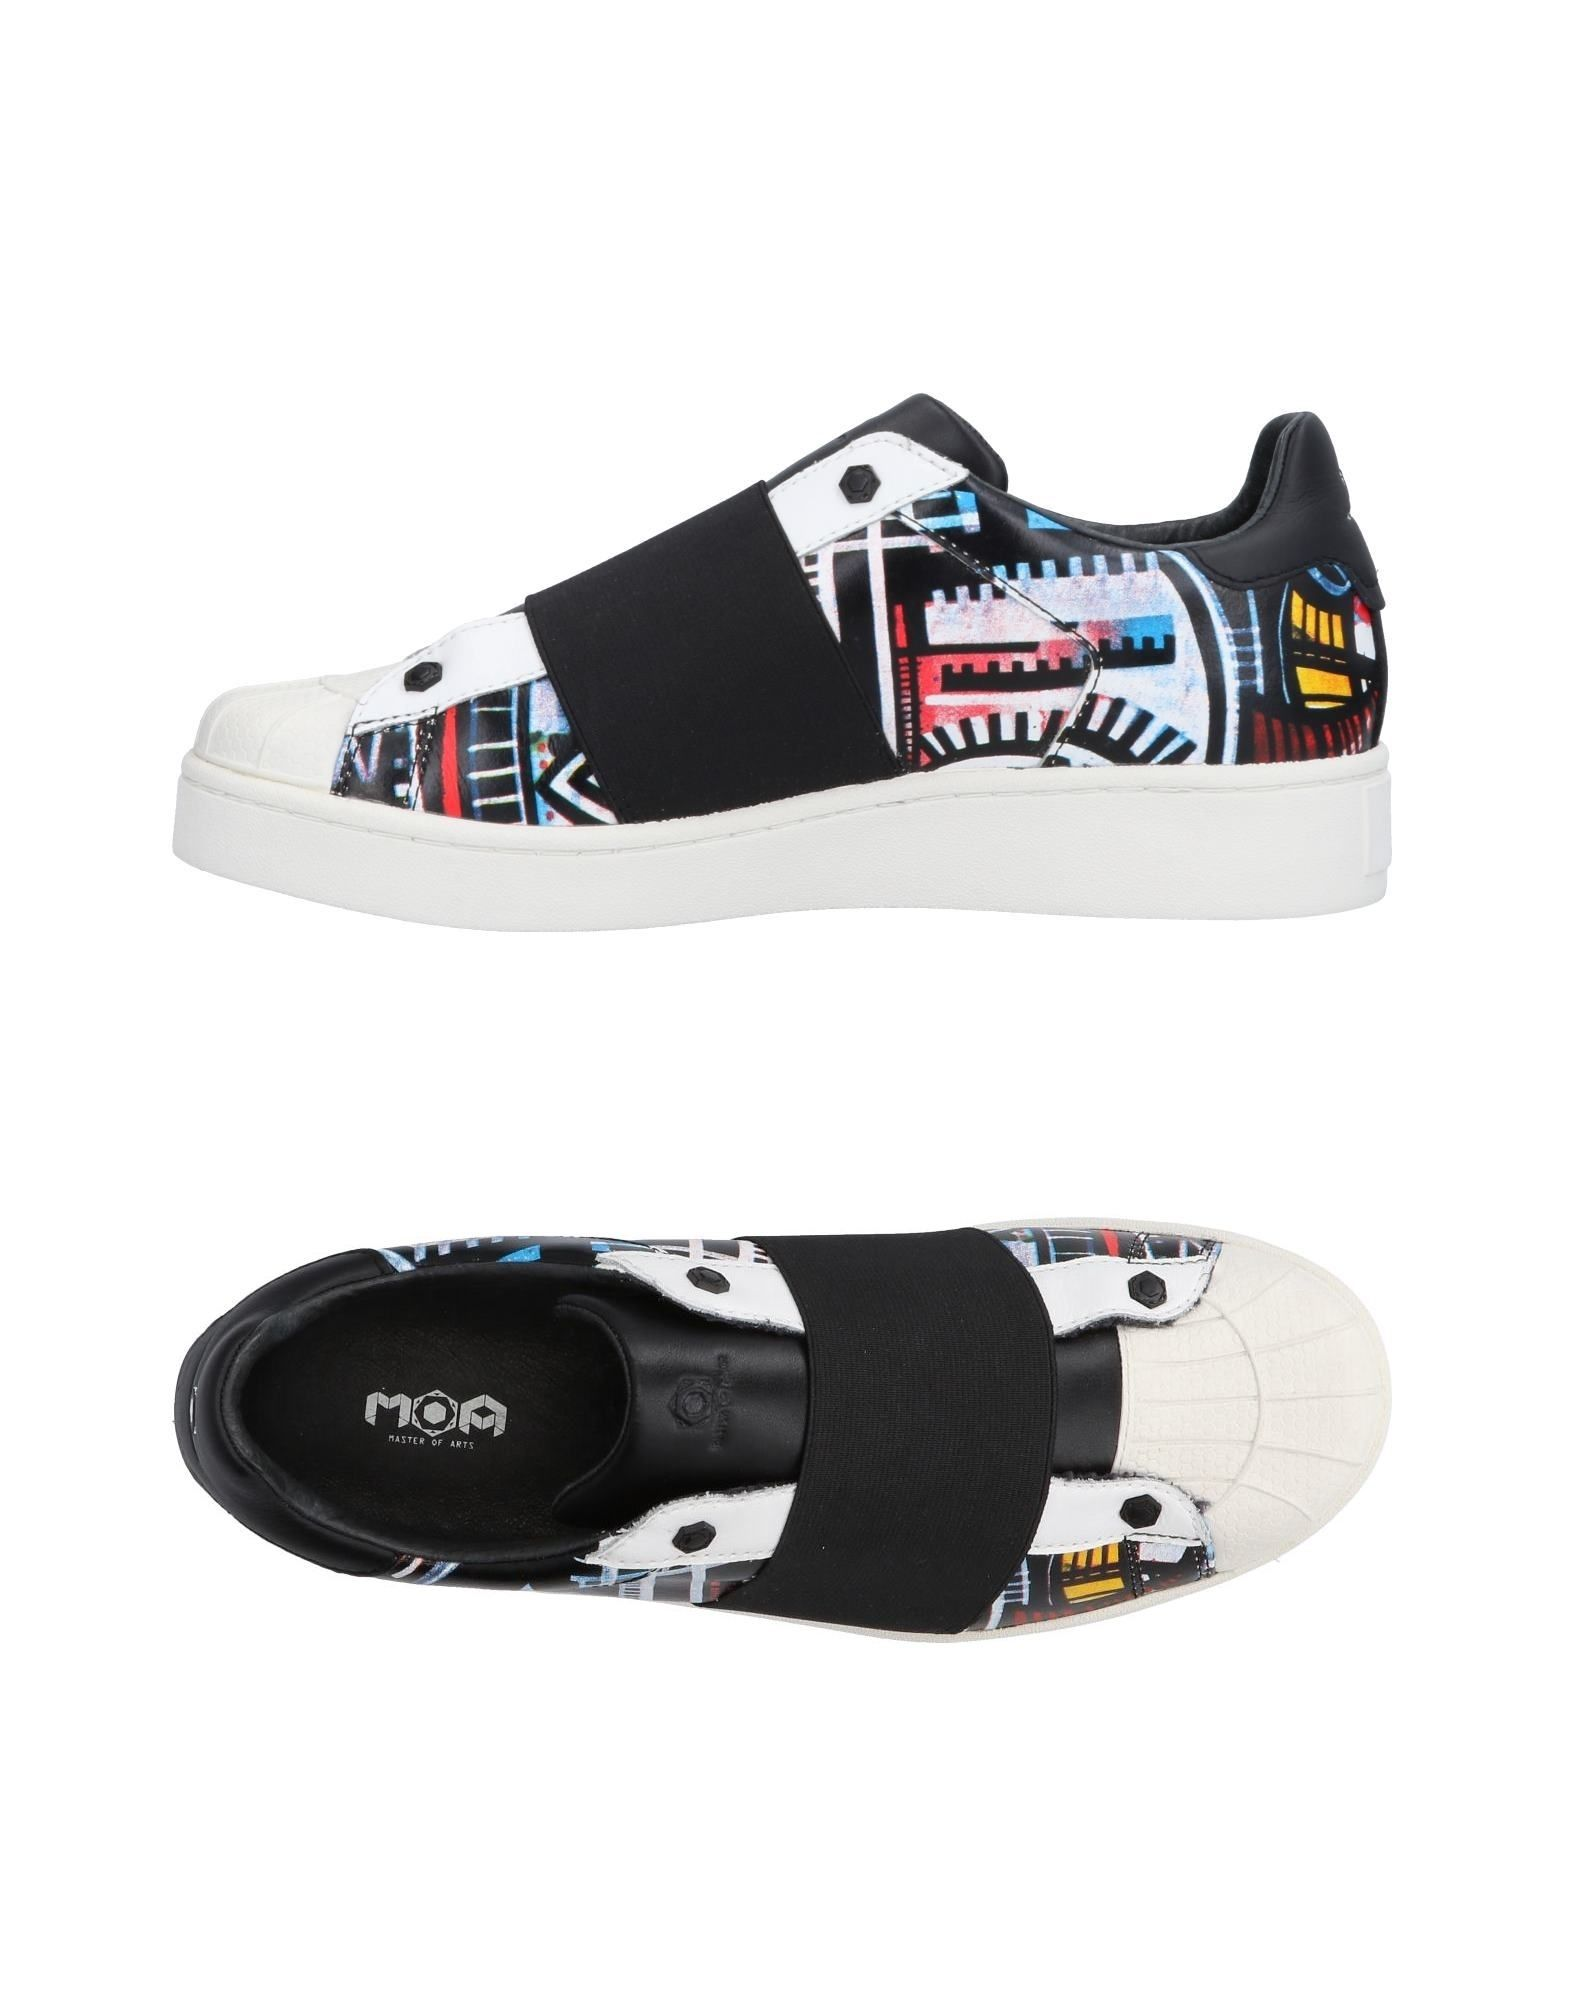 Moa Master Of Arts Sneakers - Men Sneakers Moa Master Of Arts Sneakers Men online on  United Kingdom - 11497926BX 0aa63b